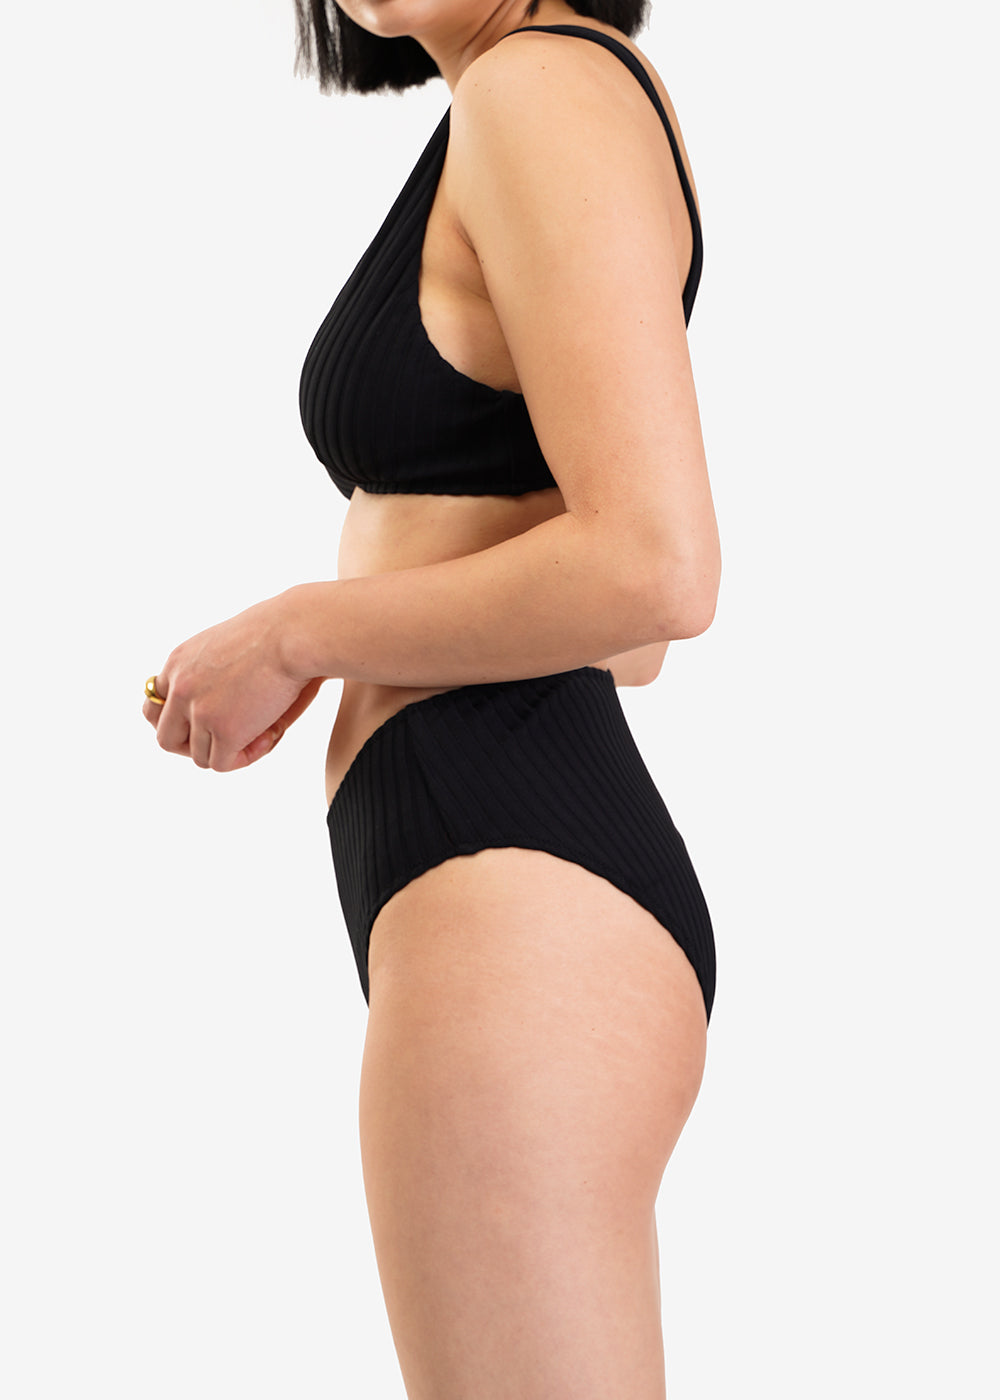 Araks Black Una Bikini Top — Shop sustainable fashion and slow fashion at New Classics Studios